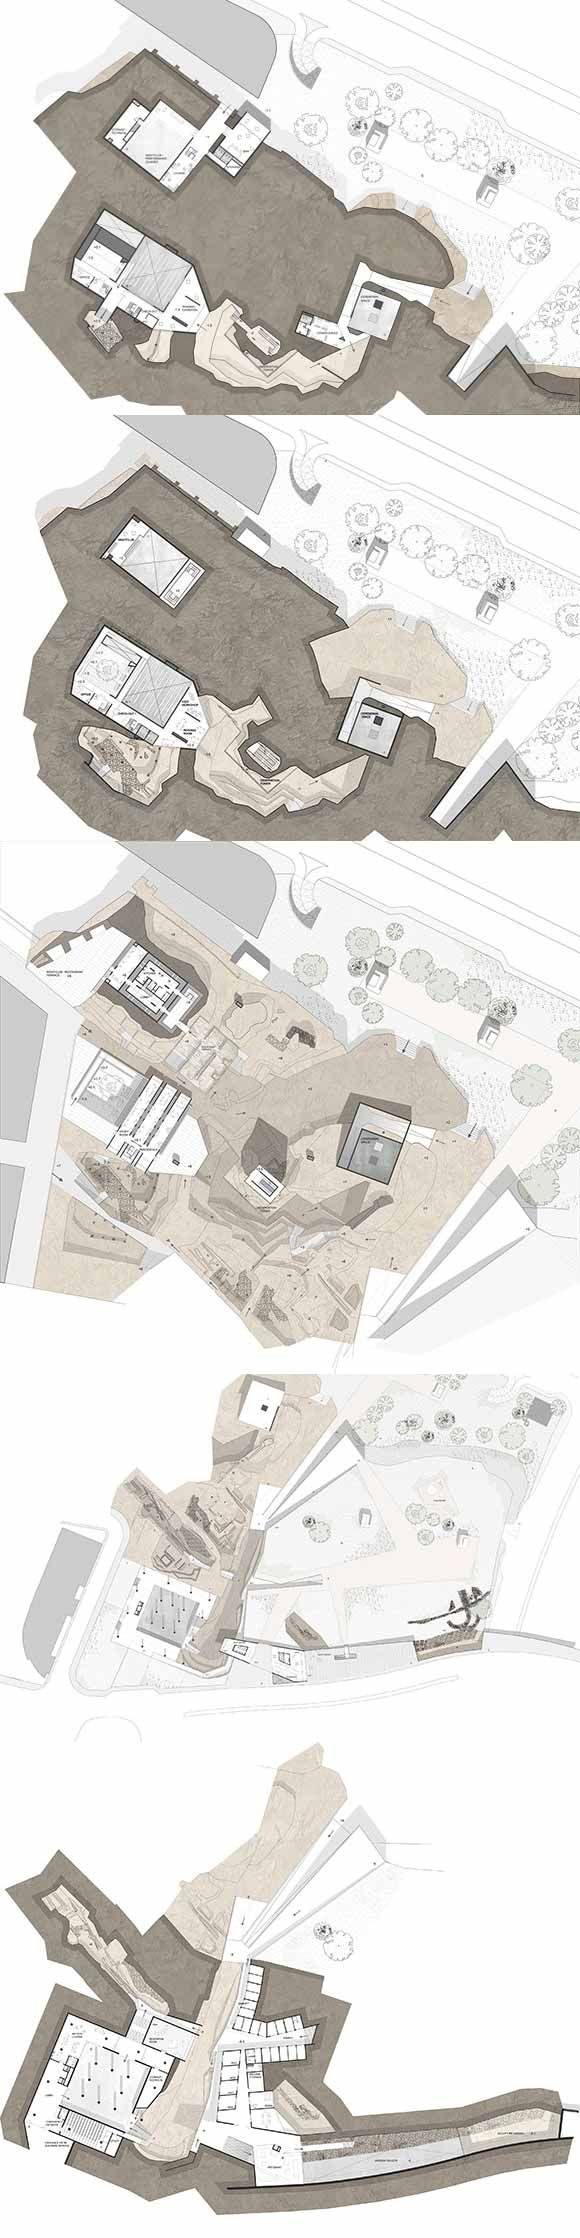 Architecture, Archaeology and Beirut: A Scenario for a Dialogue - Antoine Atallah's Final Project at AUB-2011 :: Featured Projects :: Archileb.com